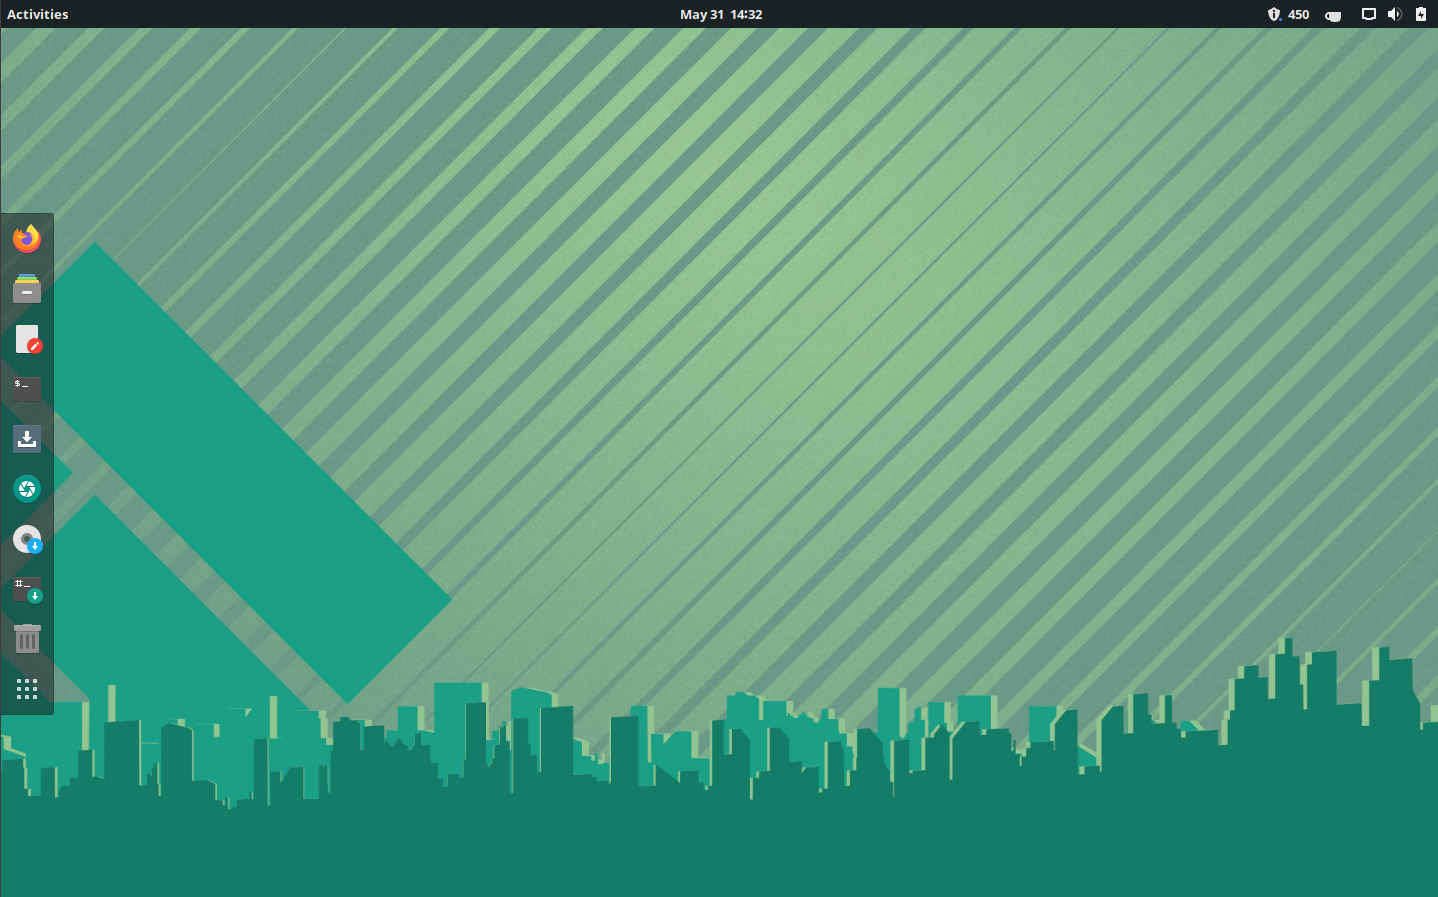 images/getting-manjaro/gnome.png